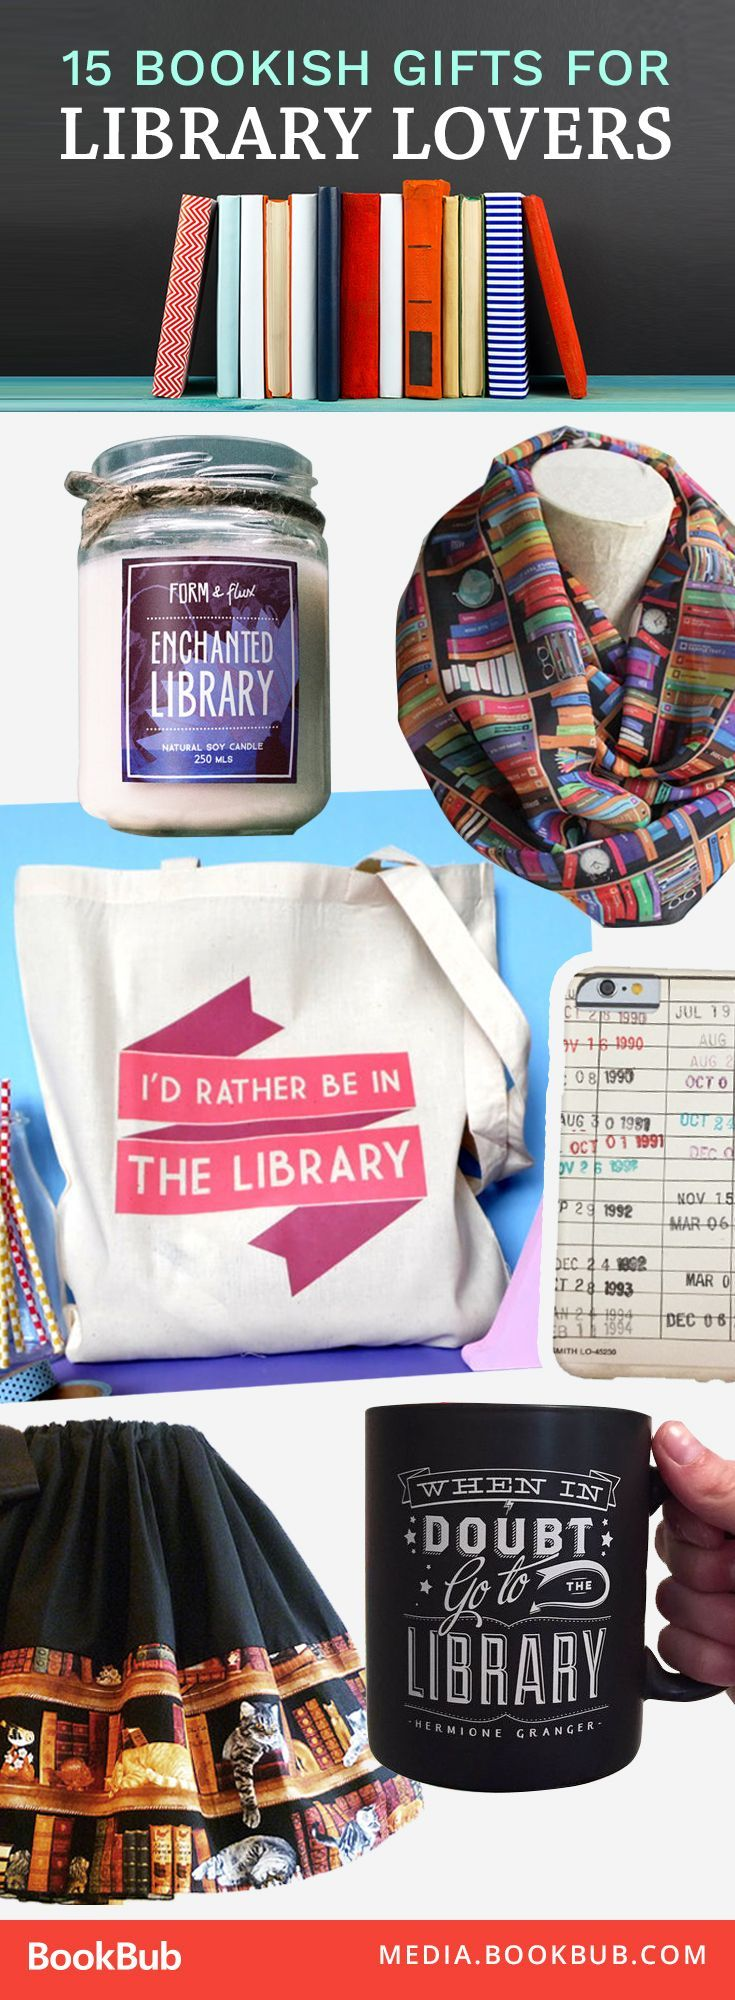 15 Perfect Gift Ideas for Library Lovers